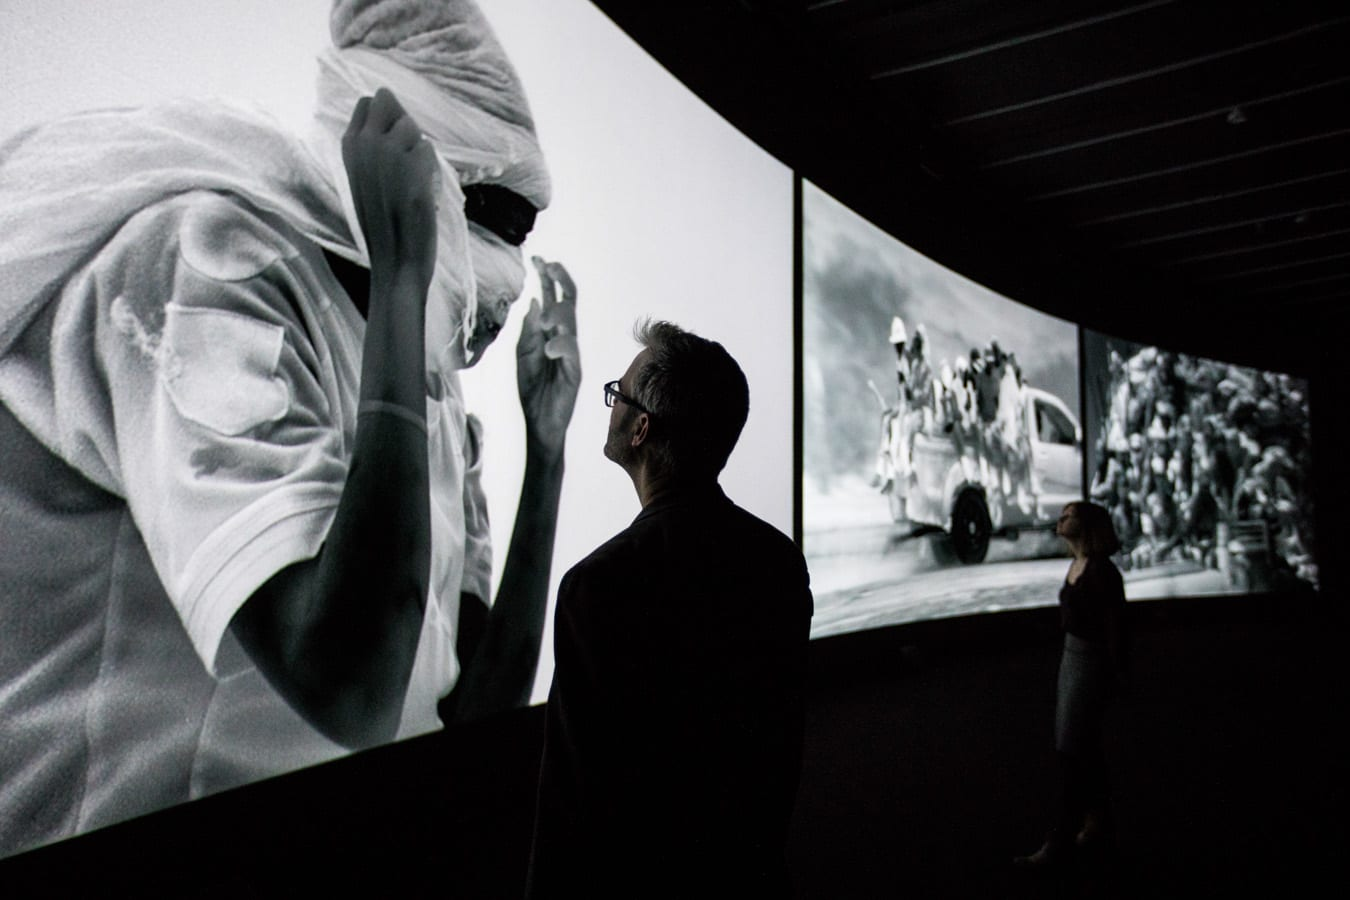 1. Richard Mosse Incoming, The Curve, Barbican Centre, Tristan Fewings (6)